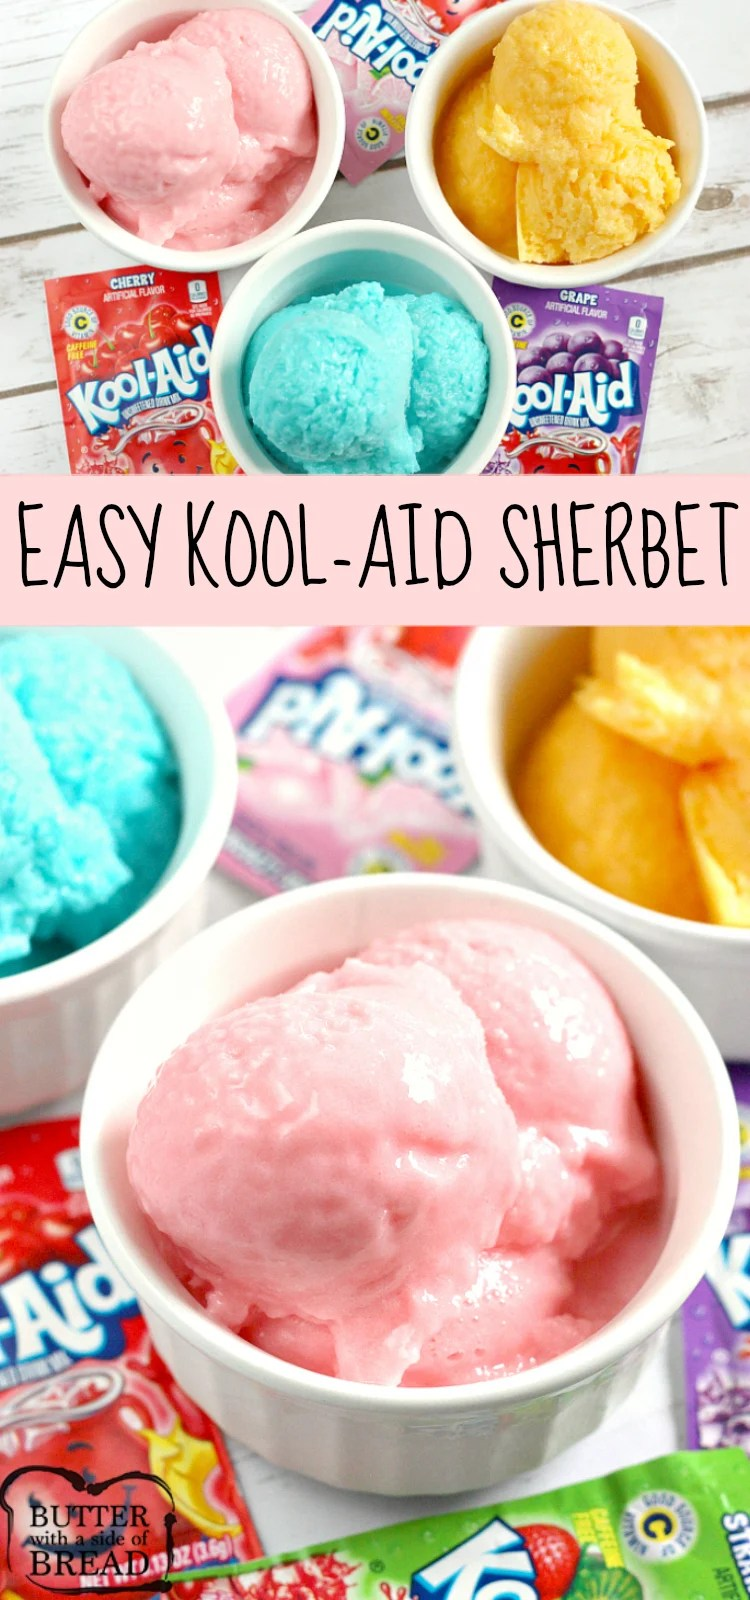 Easy Kool-Aid Sherbet is a delicious frozen treat that is made with only three ingredients! You can make strawberry sherbet, orange sherbet, watermelon sherbet - any flavor you want!